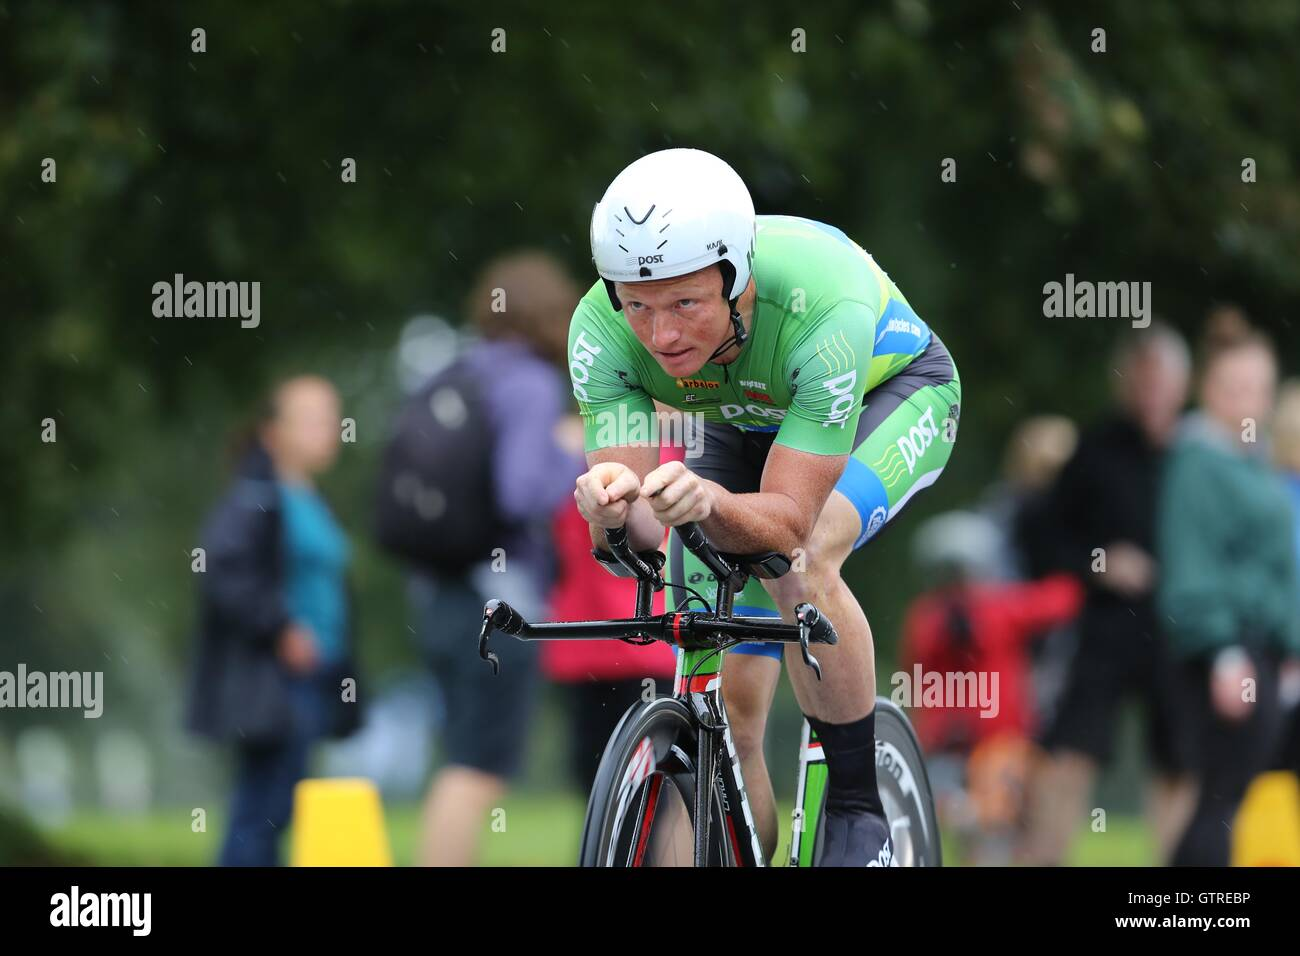 Bristol, UK.  10th September 2016. Tour of Britain stage 7a, time trial.  Damian Shaw  Credit:  Neville Styles/Alamy - Stock Image